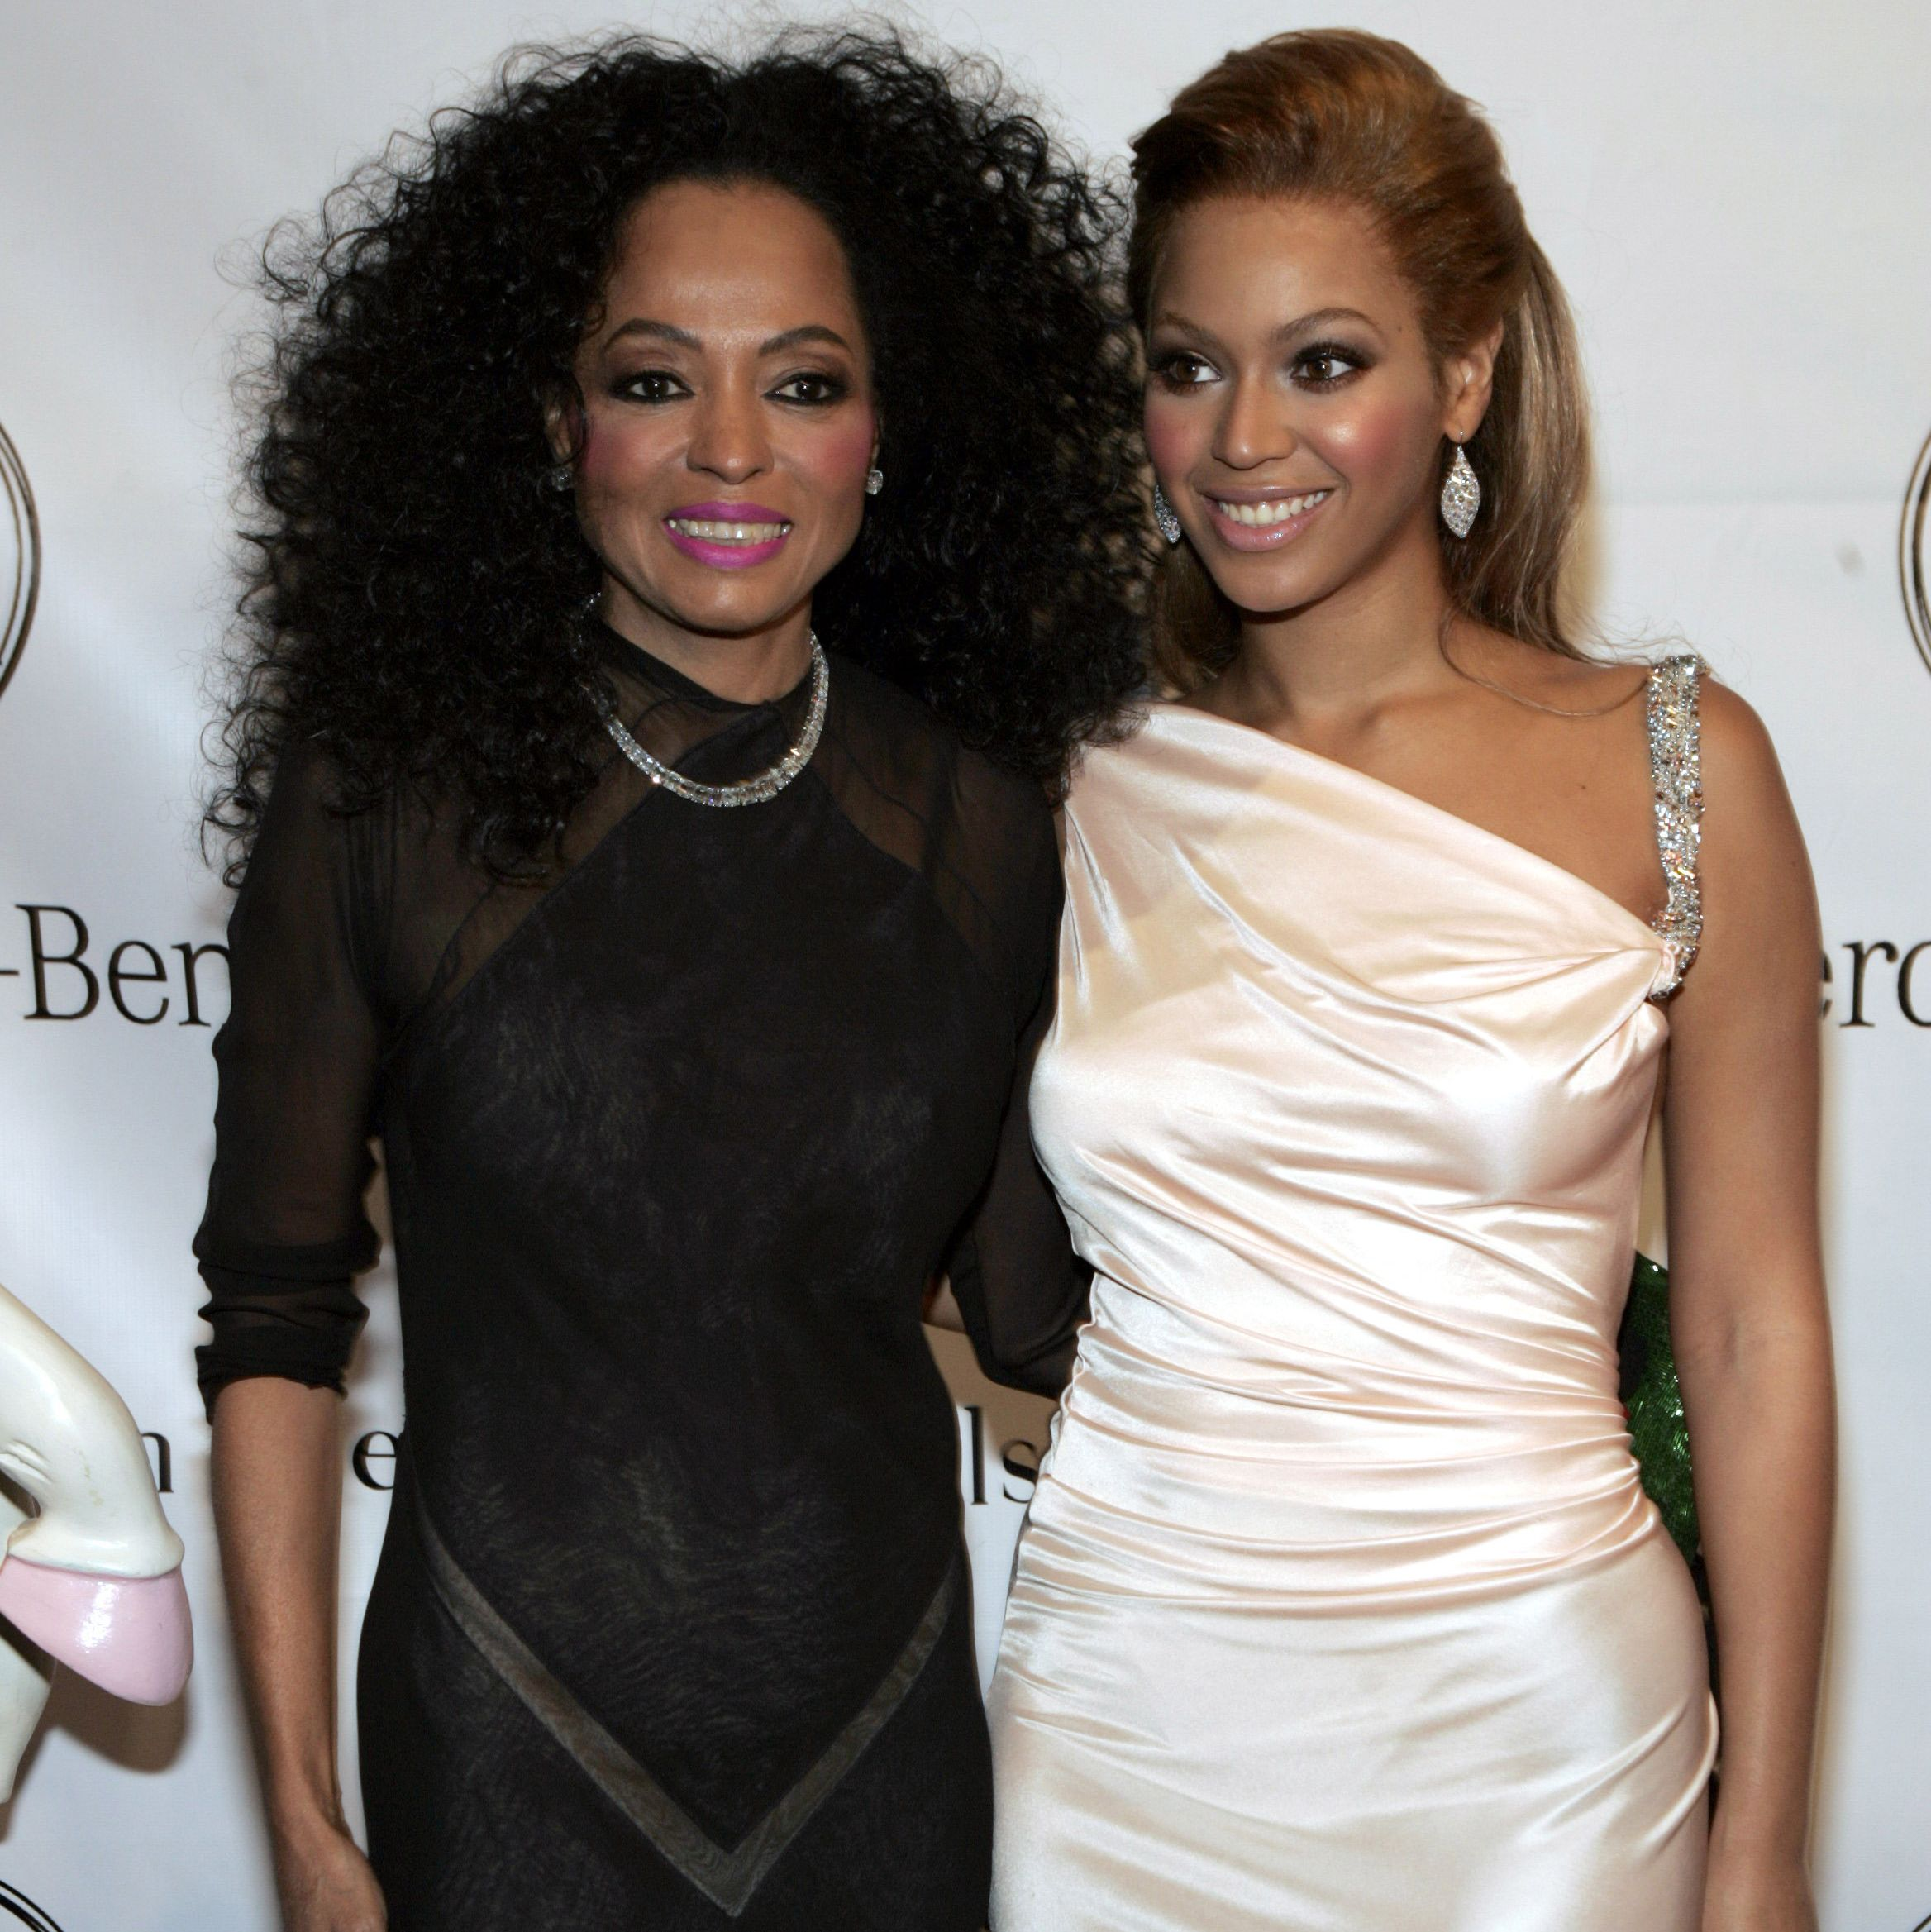 Watch Beyoncé Sing 'Happy Birthday' to Diana Ross at Her Lavish 75th Birthday Party